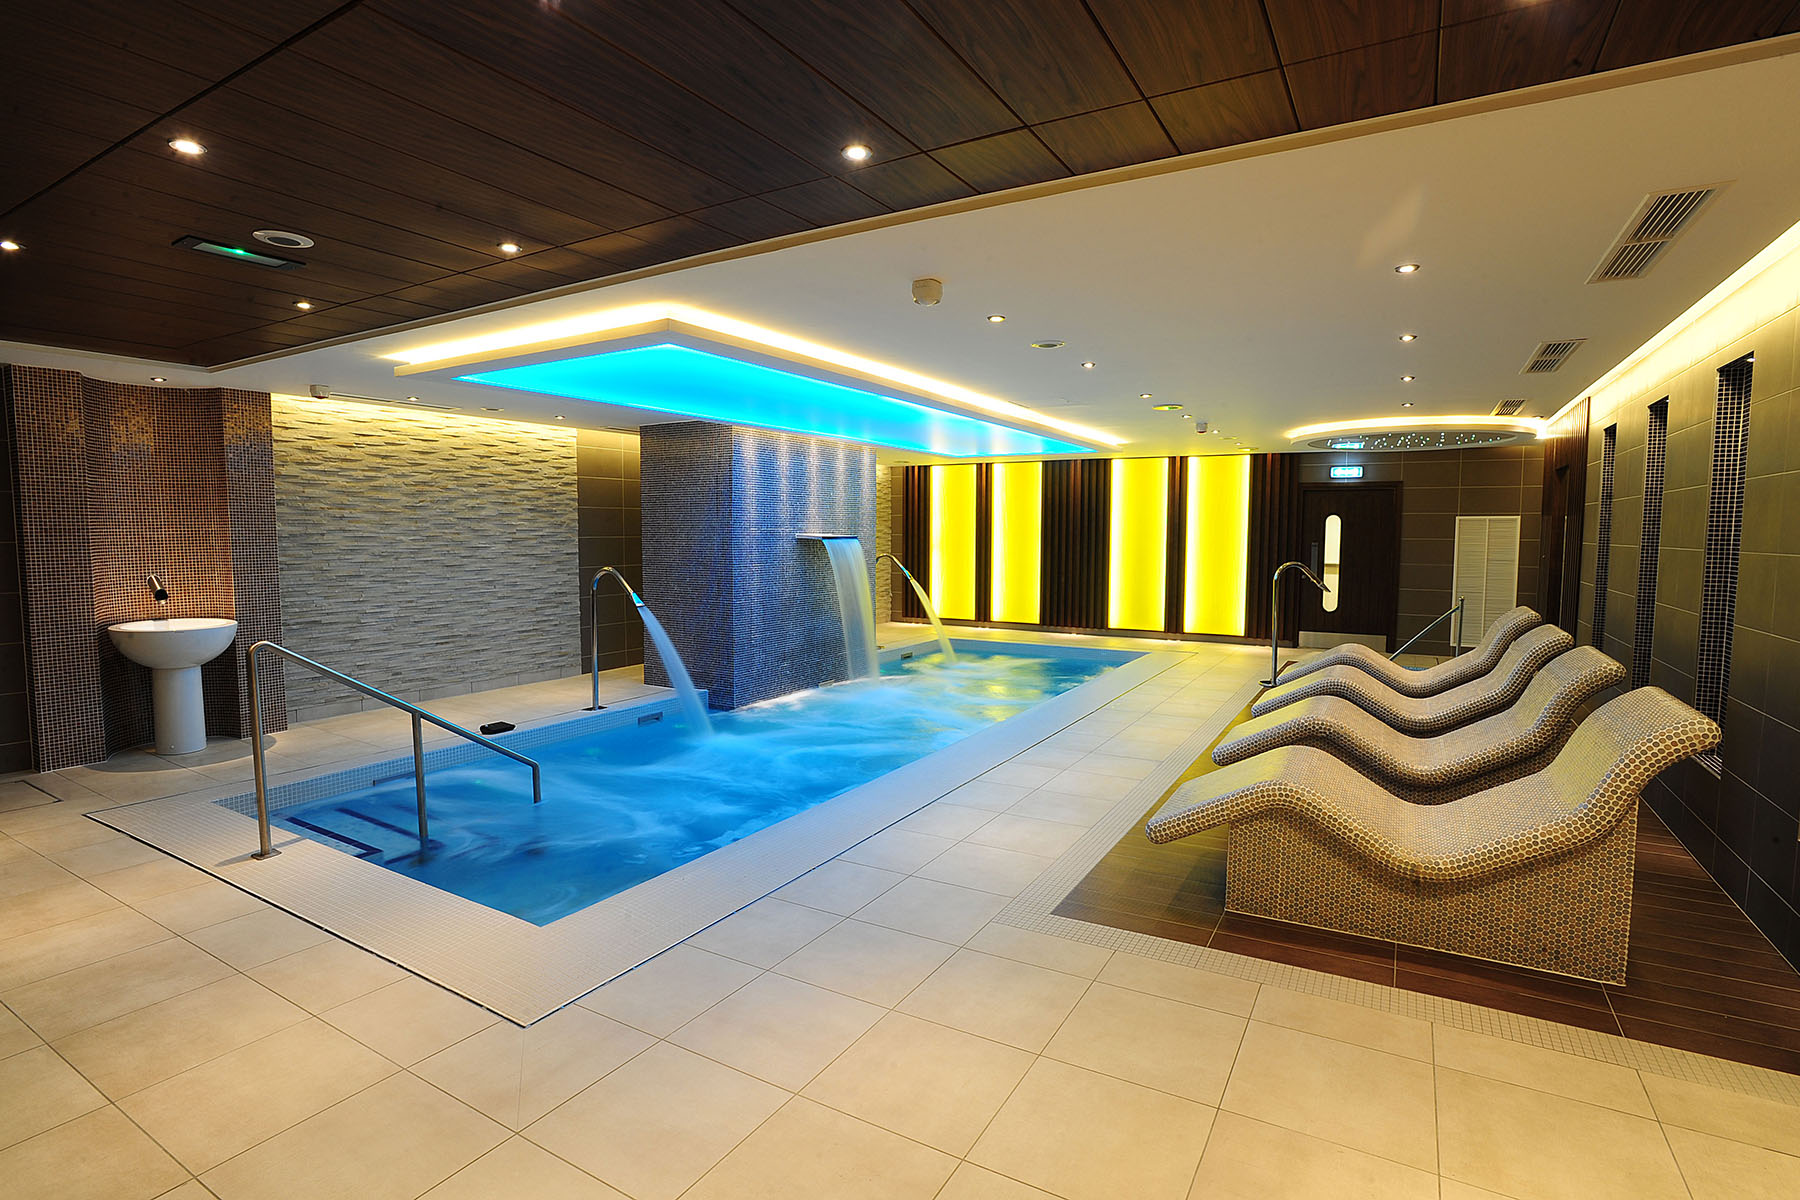 Salon Architecture Antrim Forum Spa Rpp Architects Ltd Belfast